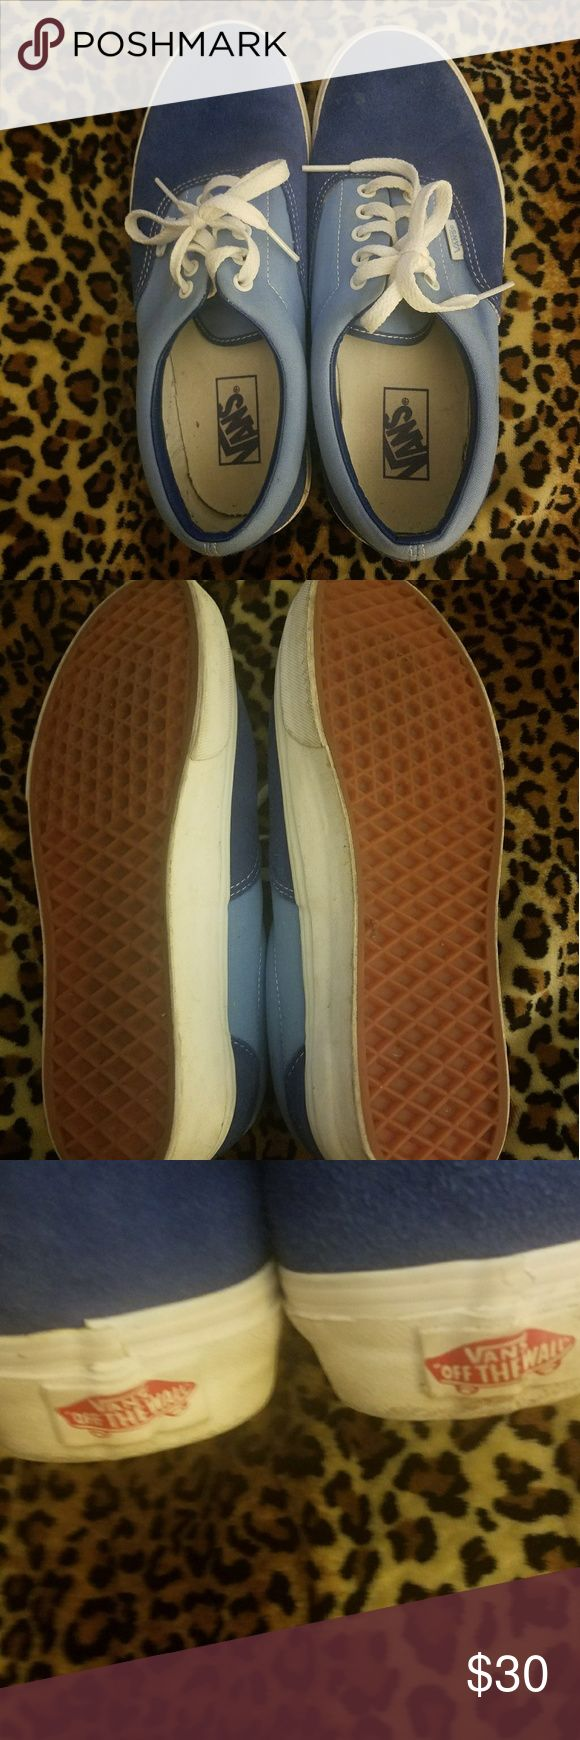 VANS tennis shoes These tennis shoes are lightly used but in great condition. They can be unisex. Men's size 9 and women's size 10.5 Vans Shoes